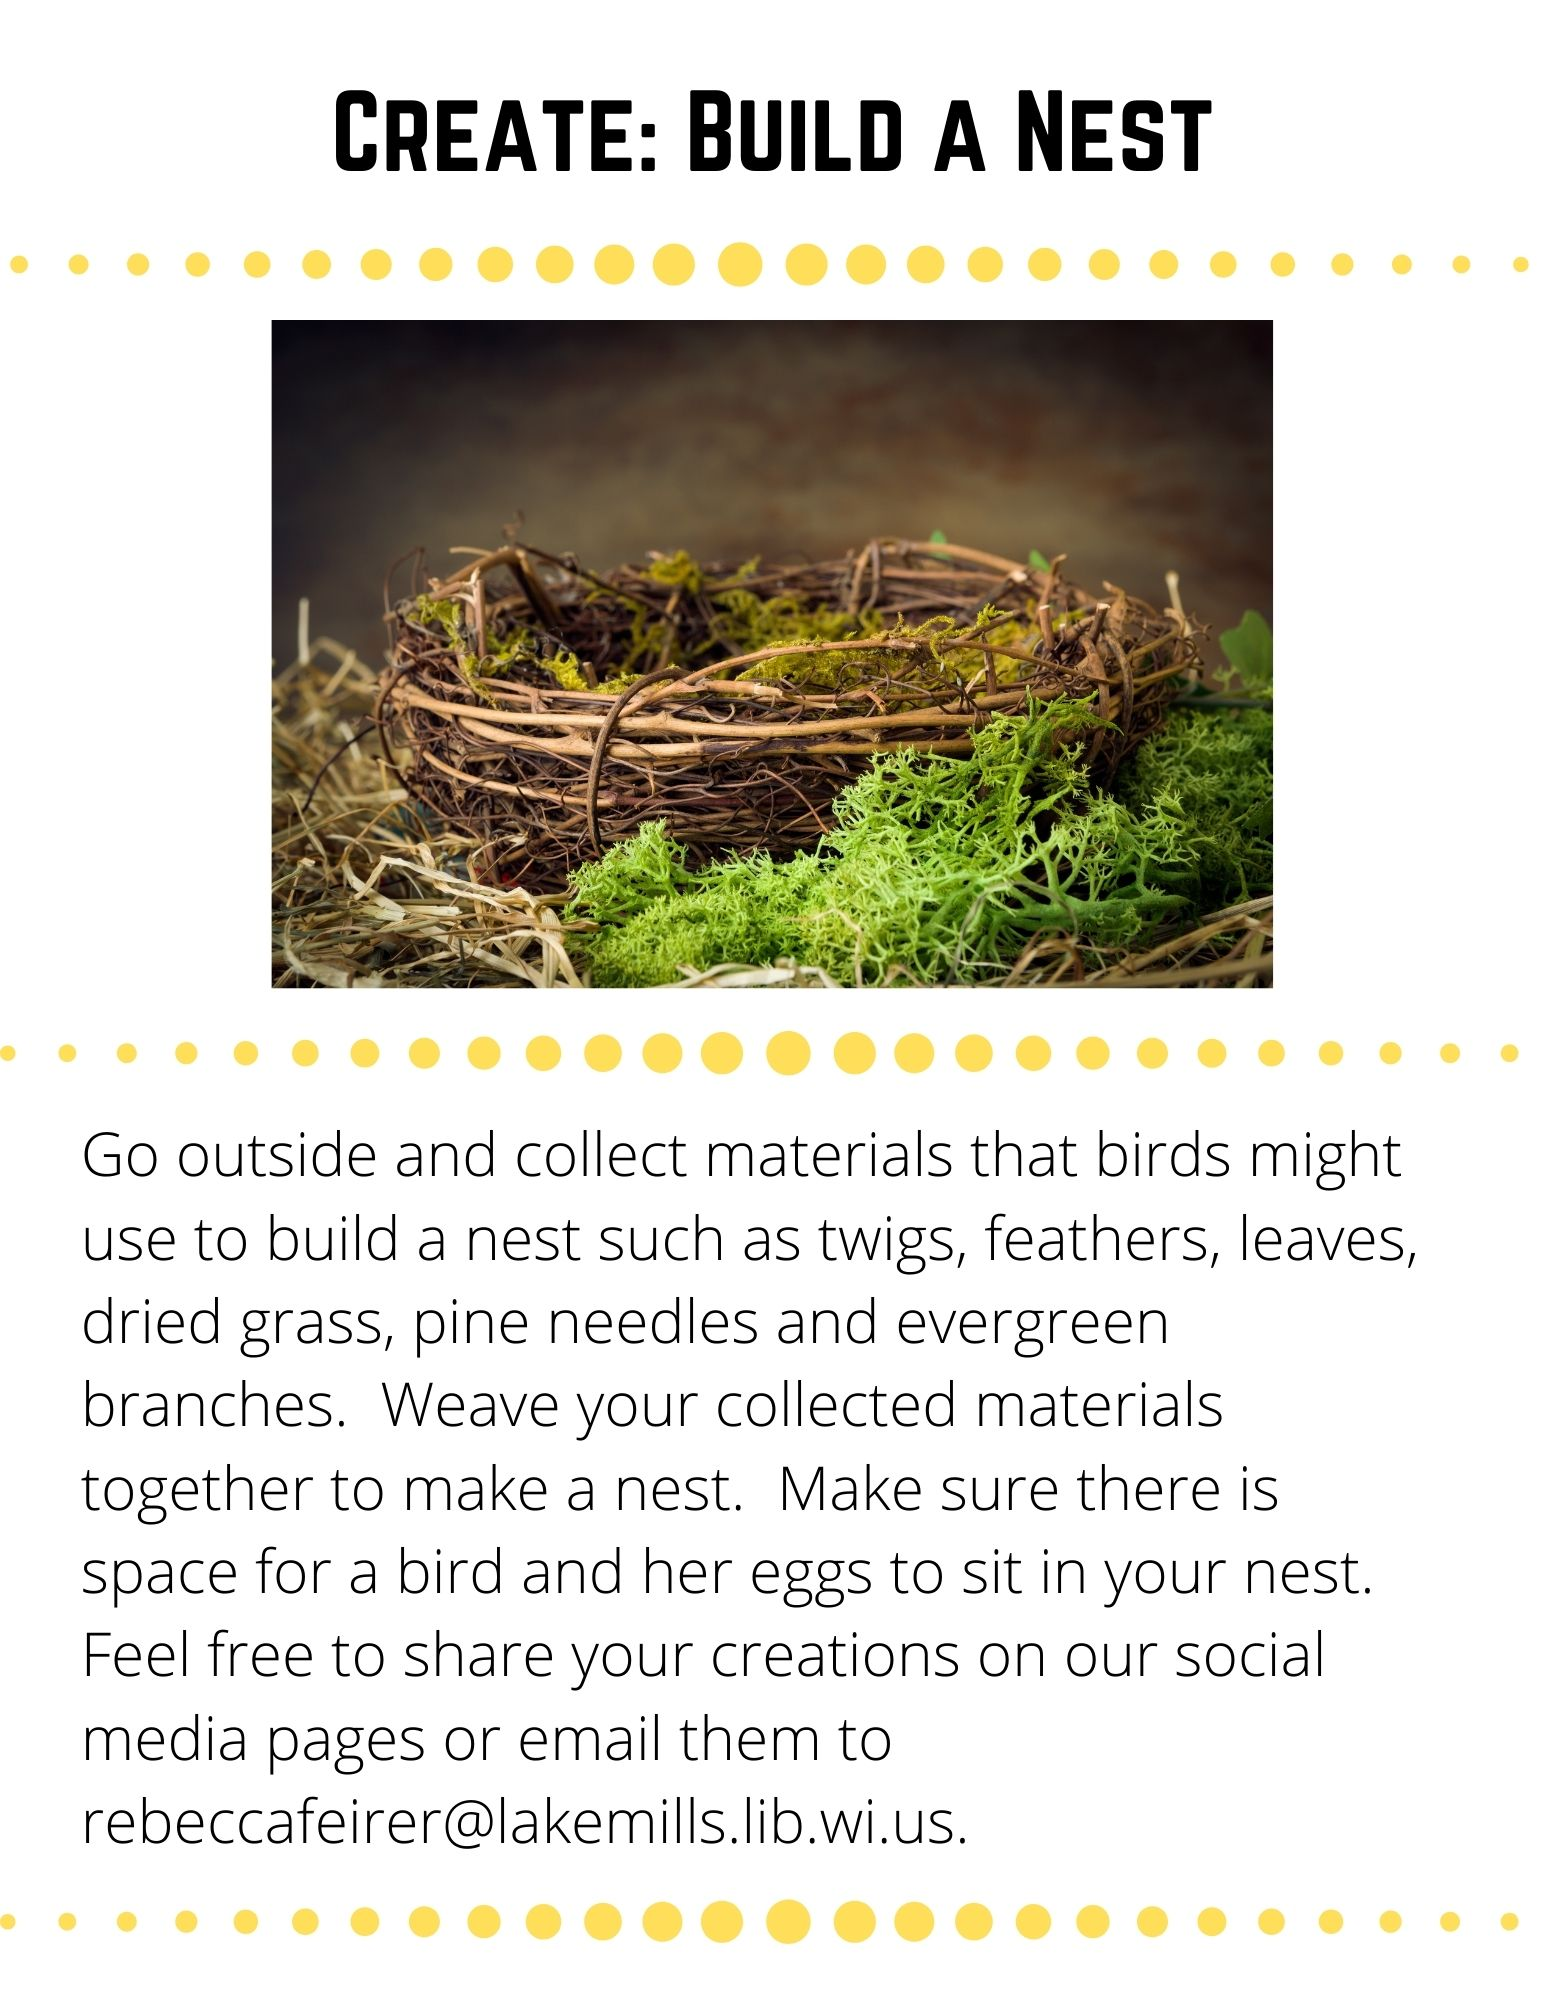 Create: Build a Nest. Go outside and collect materials that birds might use to build a nest such as twigs, feathers, leaves, dried grass, pine needles and evergreen branches.  Weave your collected materials together to make a nest.  Make sure there is space for a bird and her eggs to sit in your nest.  Feel free to share your creations on our social media pages or email them to rebeccafeirer@lakemills.lib.wi.us.